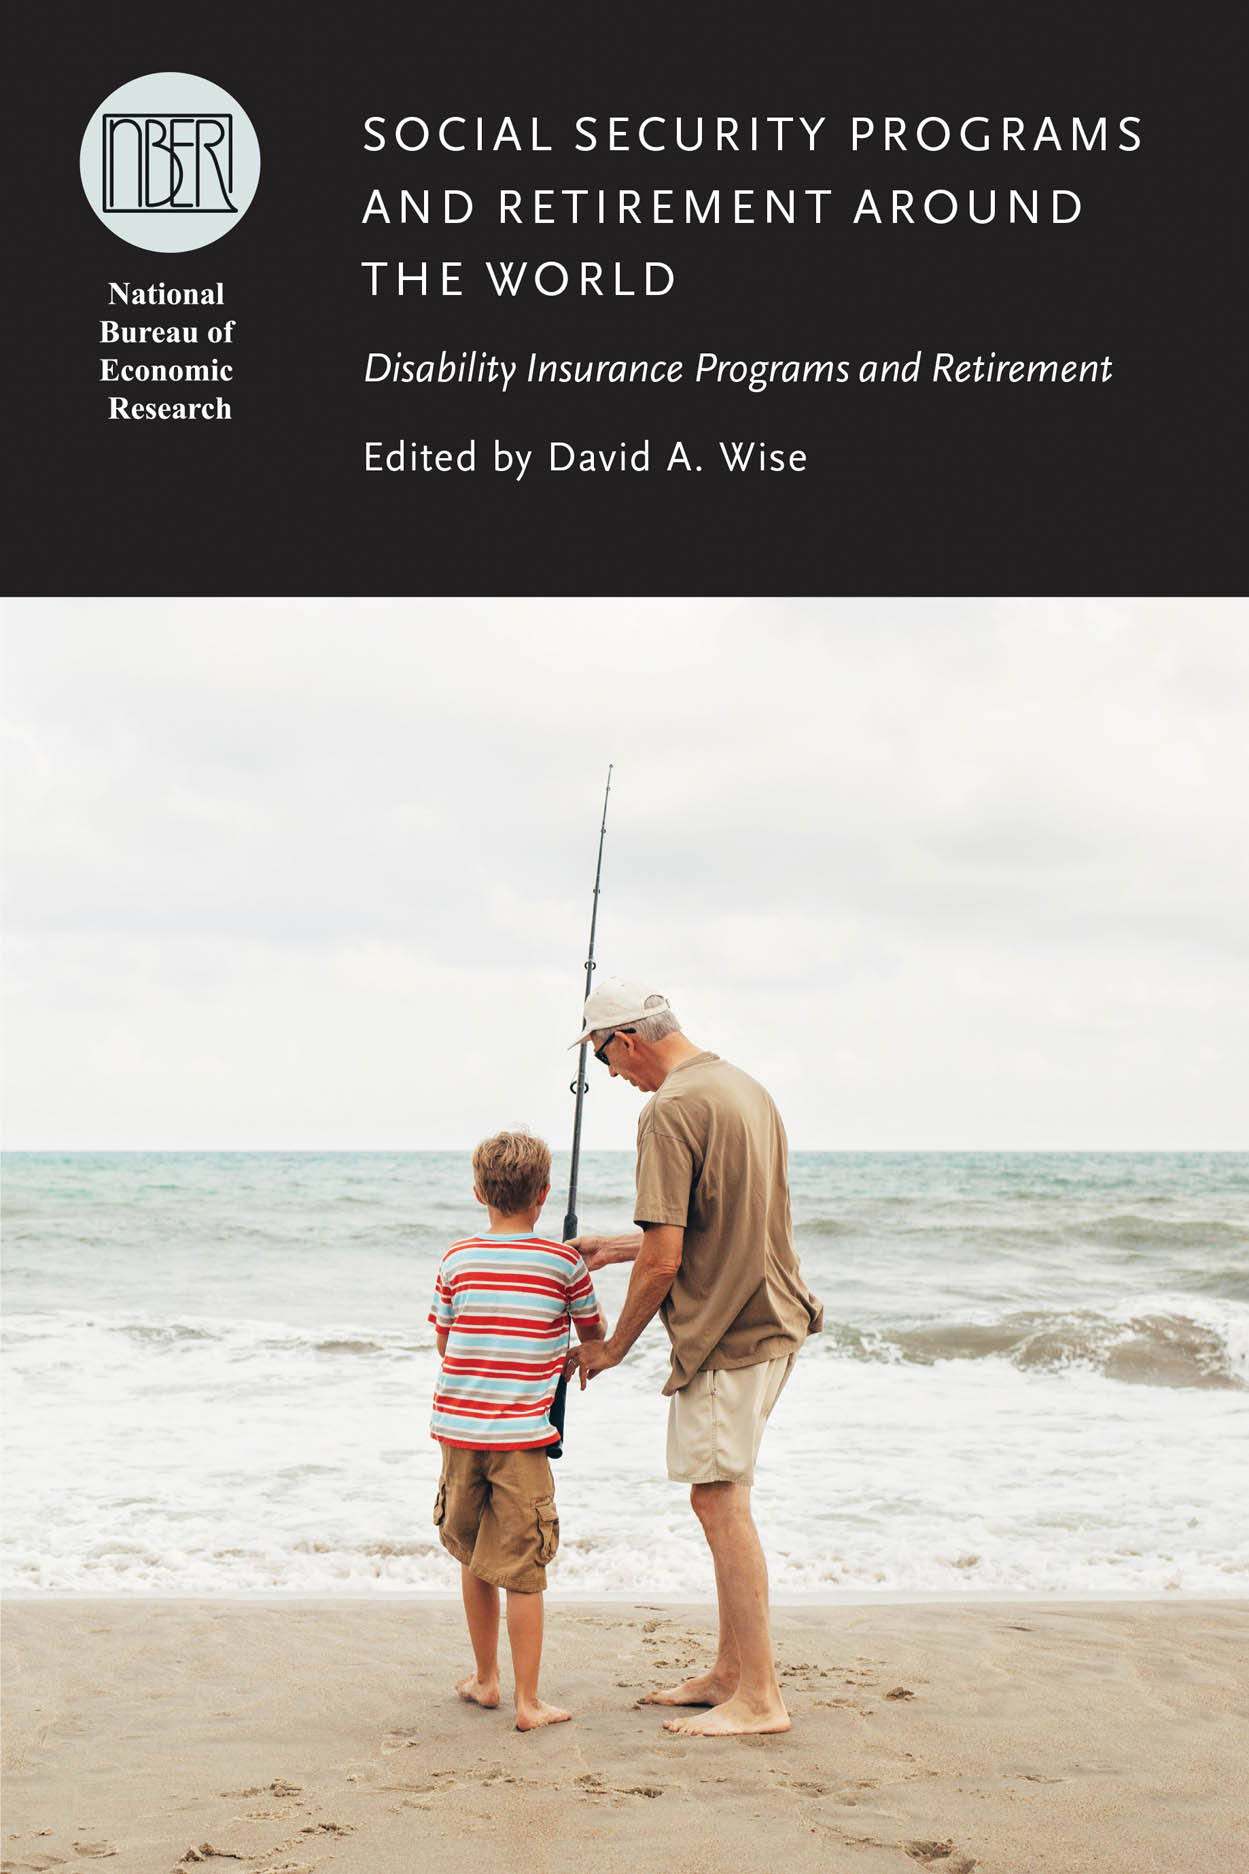 Social Security Programs and Retirement around the World: Disability Insurance Programs and Retirement